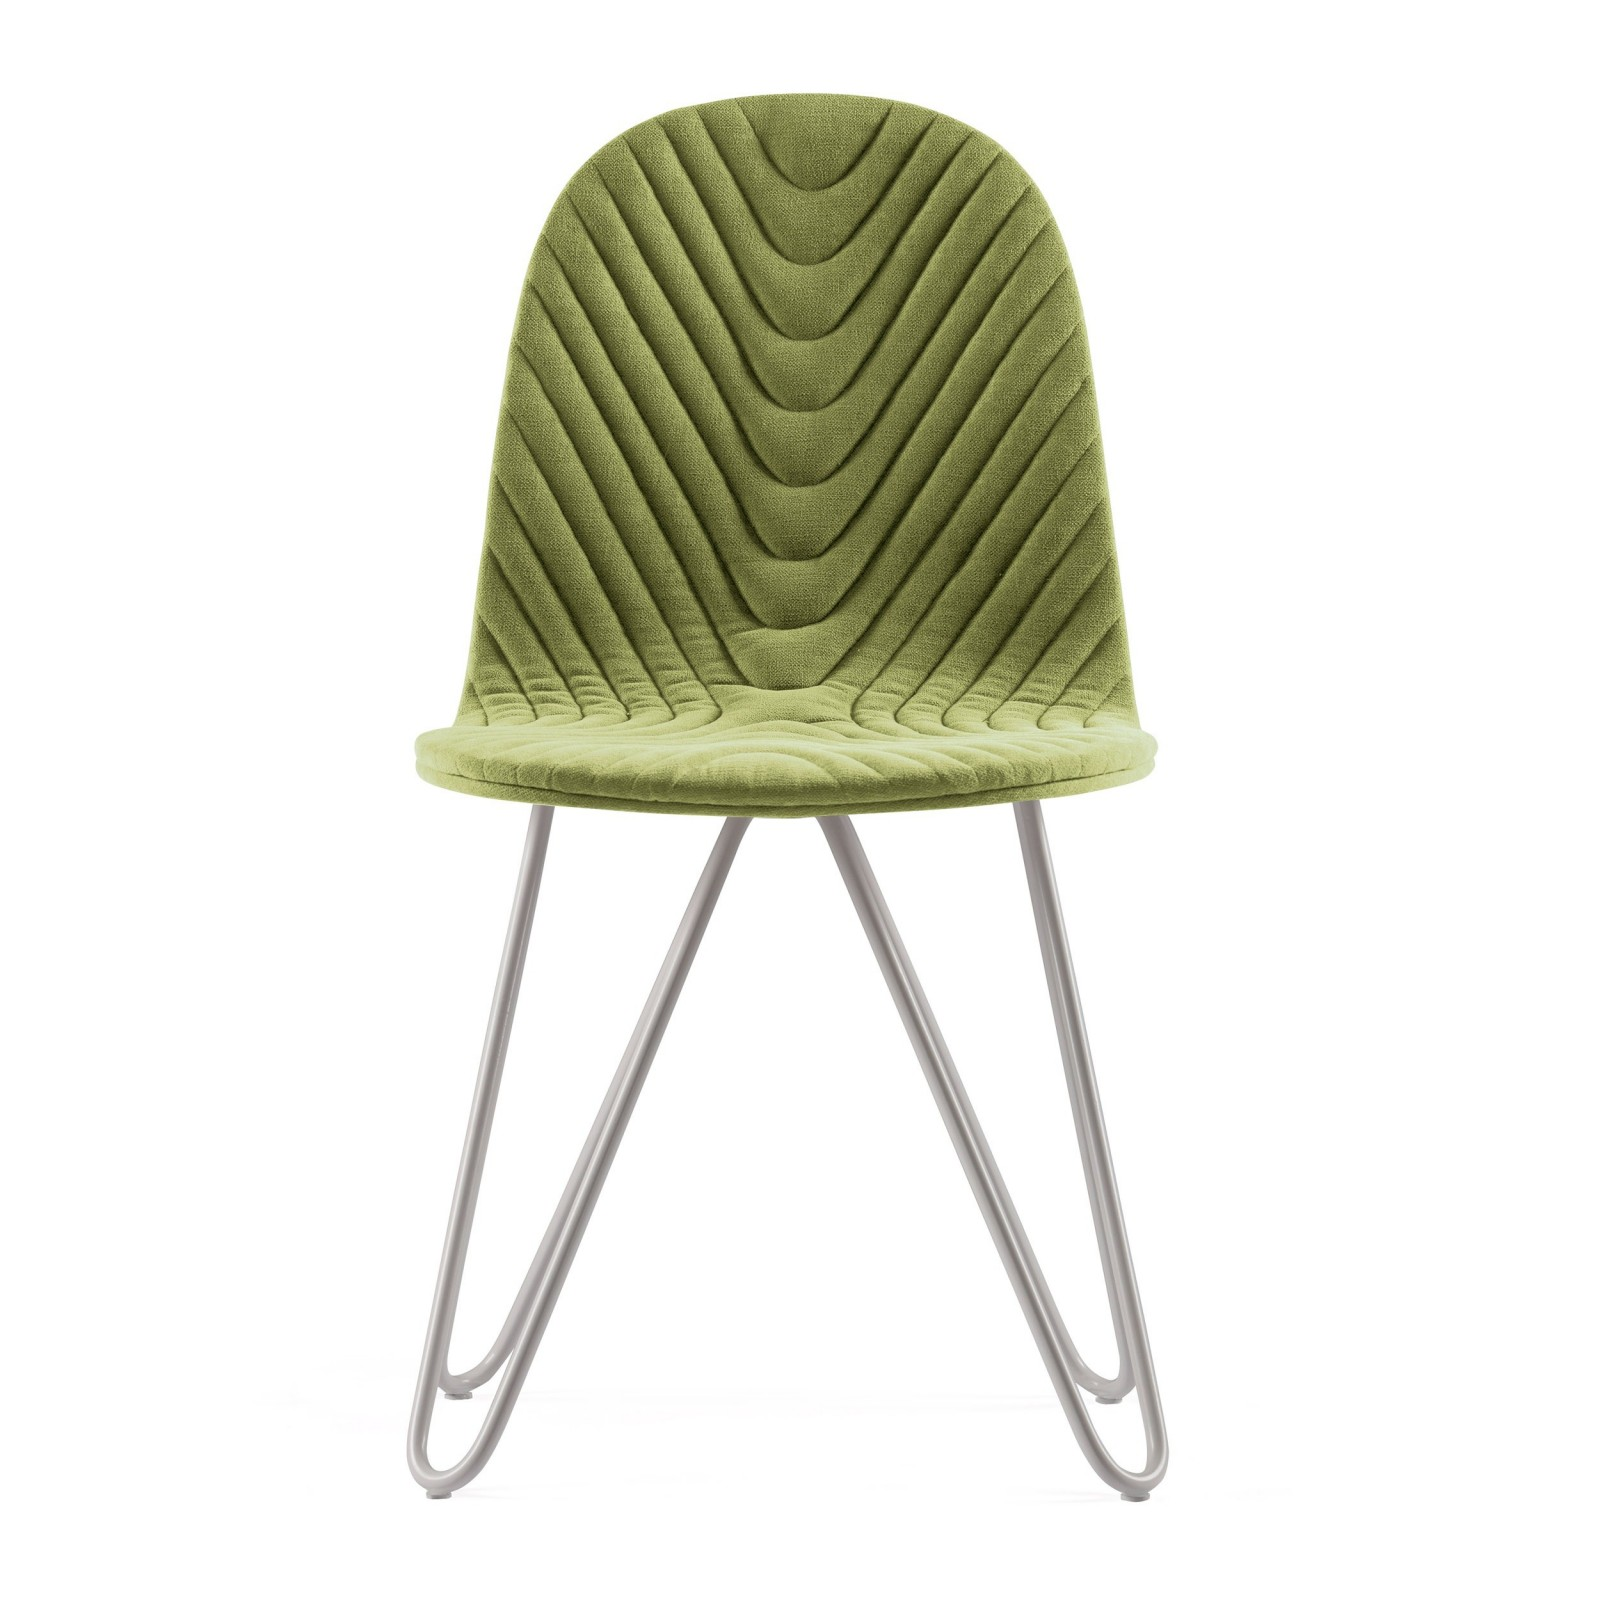 Mannequin chair - 03 - light green